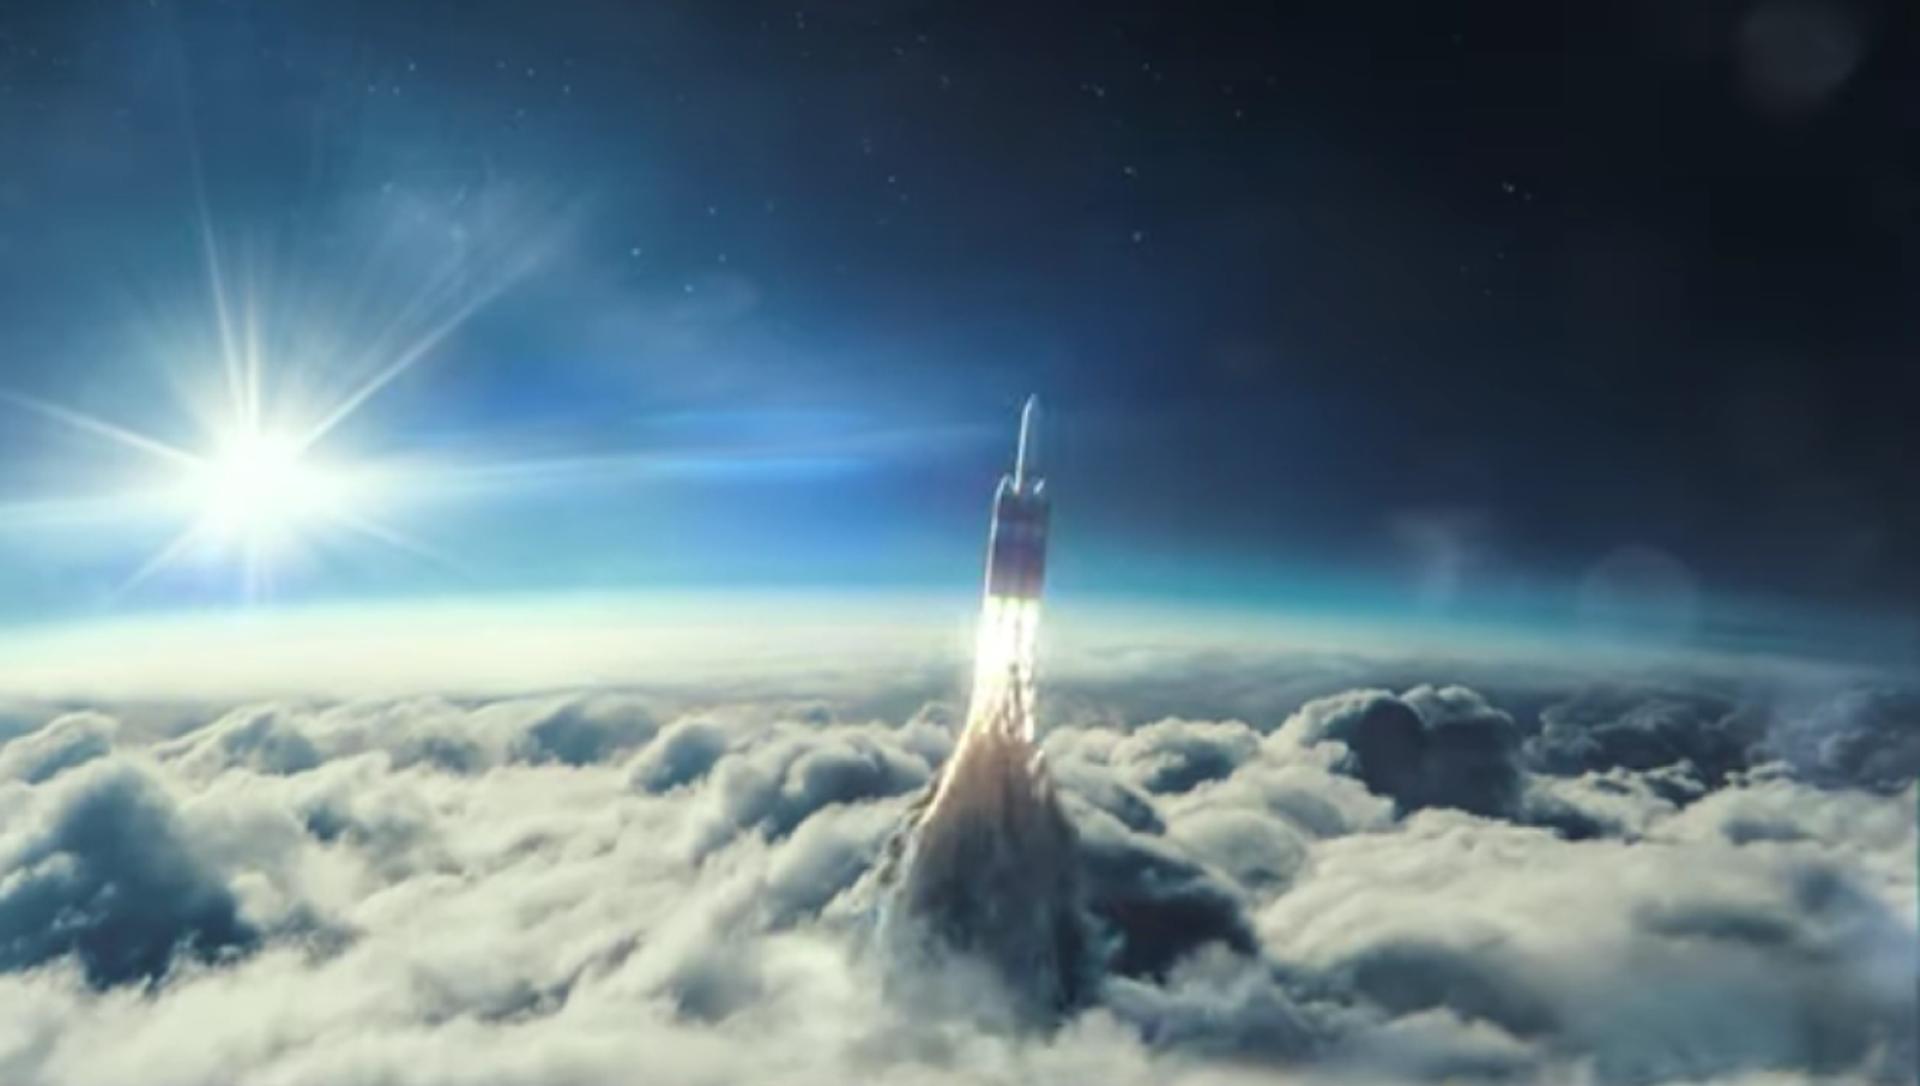 In a still from a US Space Force recruitment video, a rocket resembling the Delta IV Heavy rocket designed by United Launch Alliance blasts through the clouds - Sputnik International, 1920, 29.08.2021